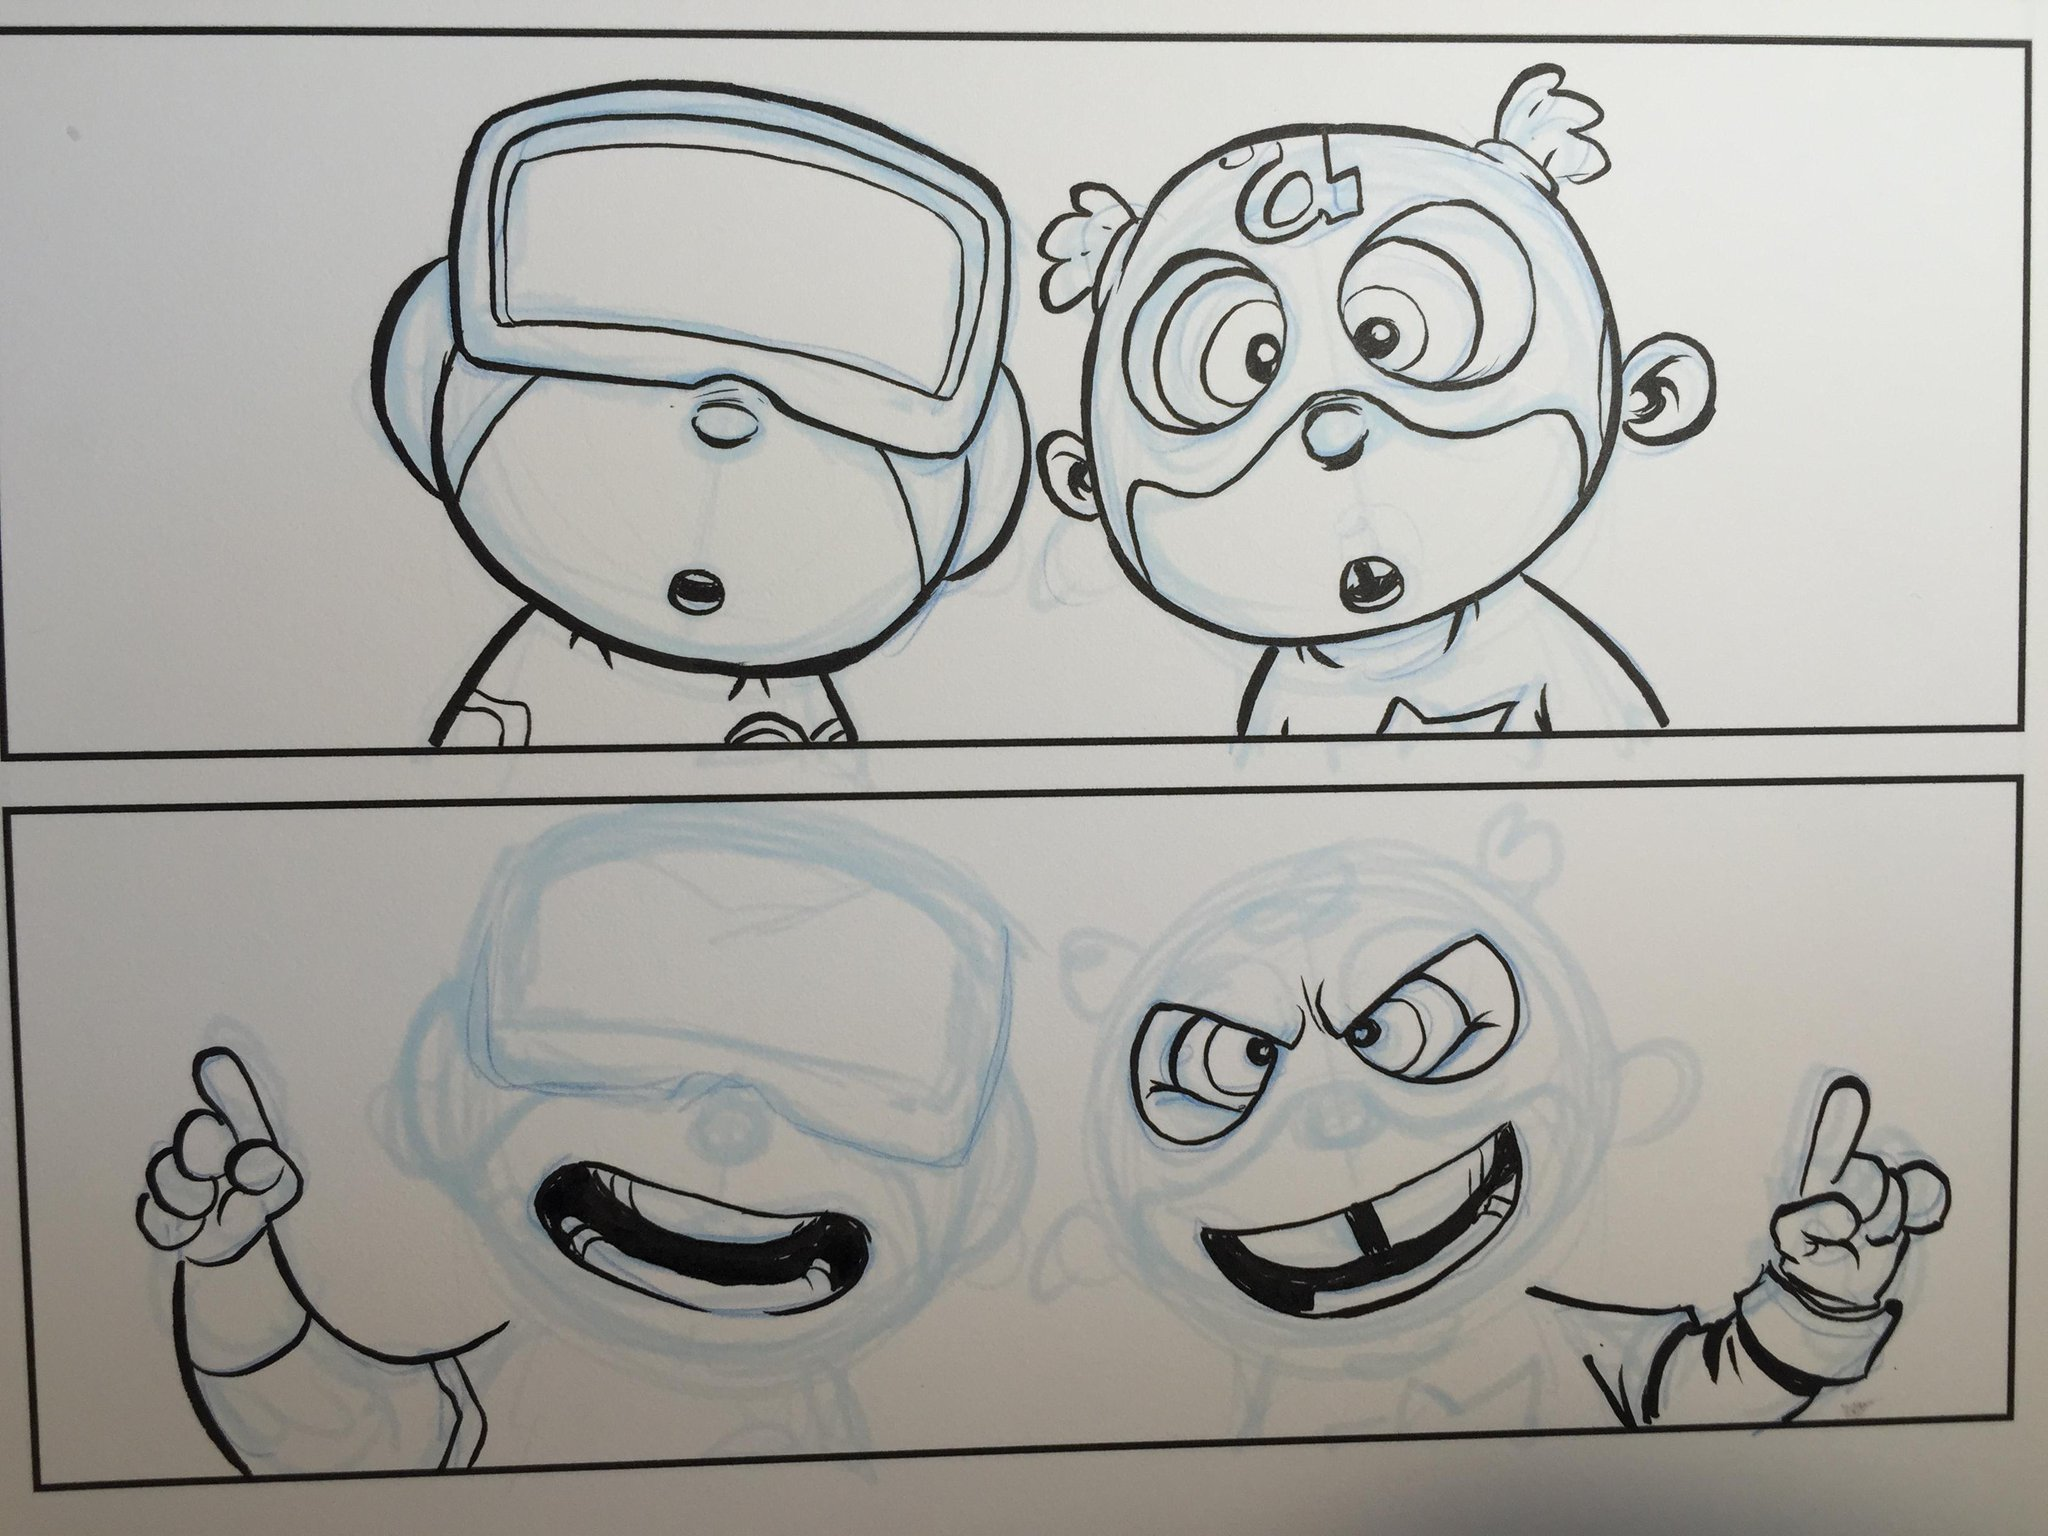 Easy way to slightly change expressions without redrawing. Timing tricks. http://t.co/PS1GcsSgvj